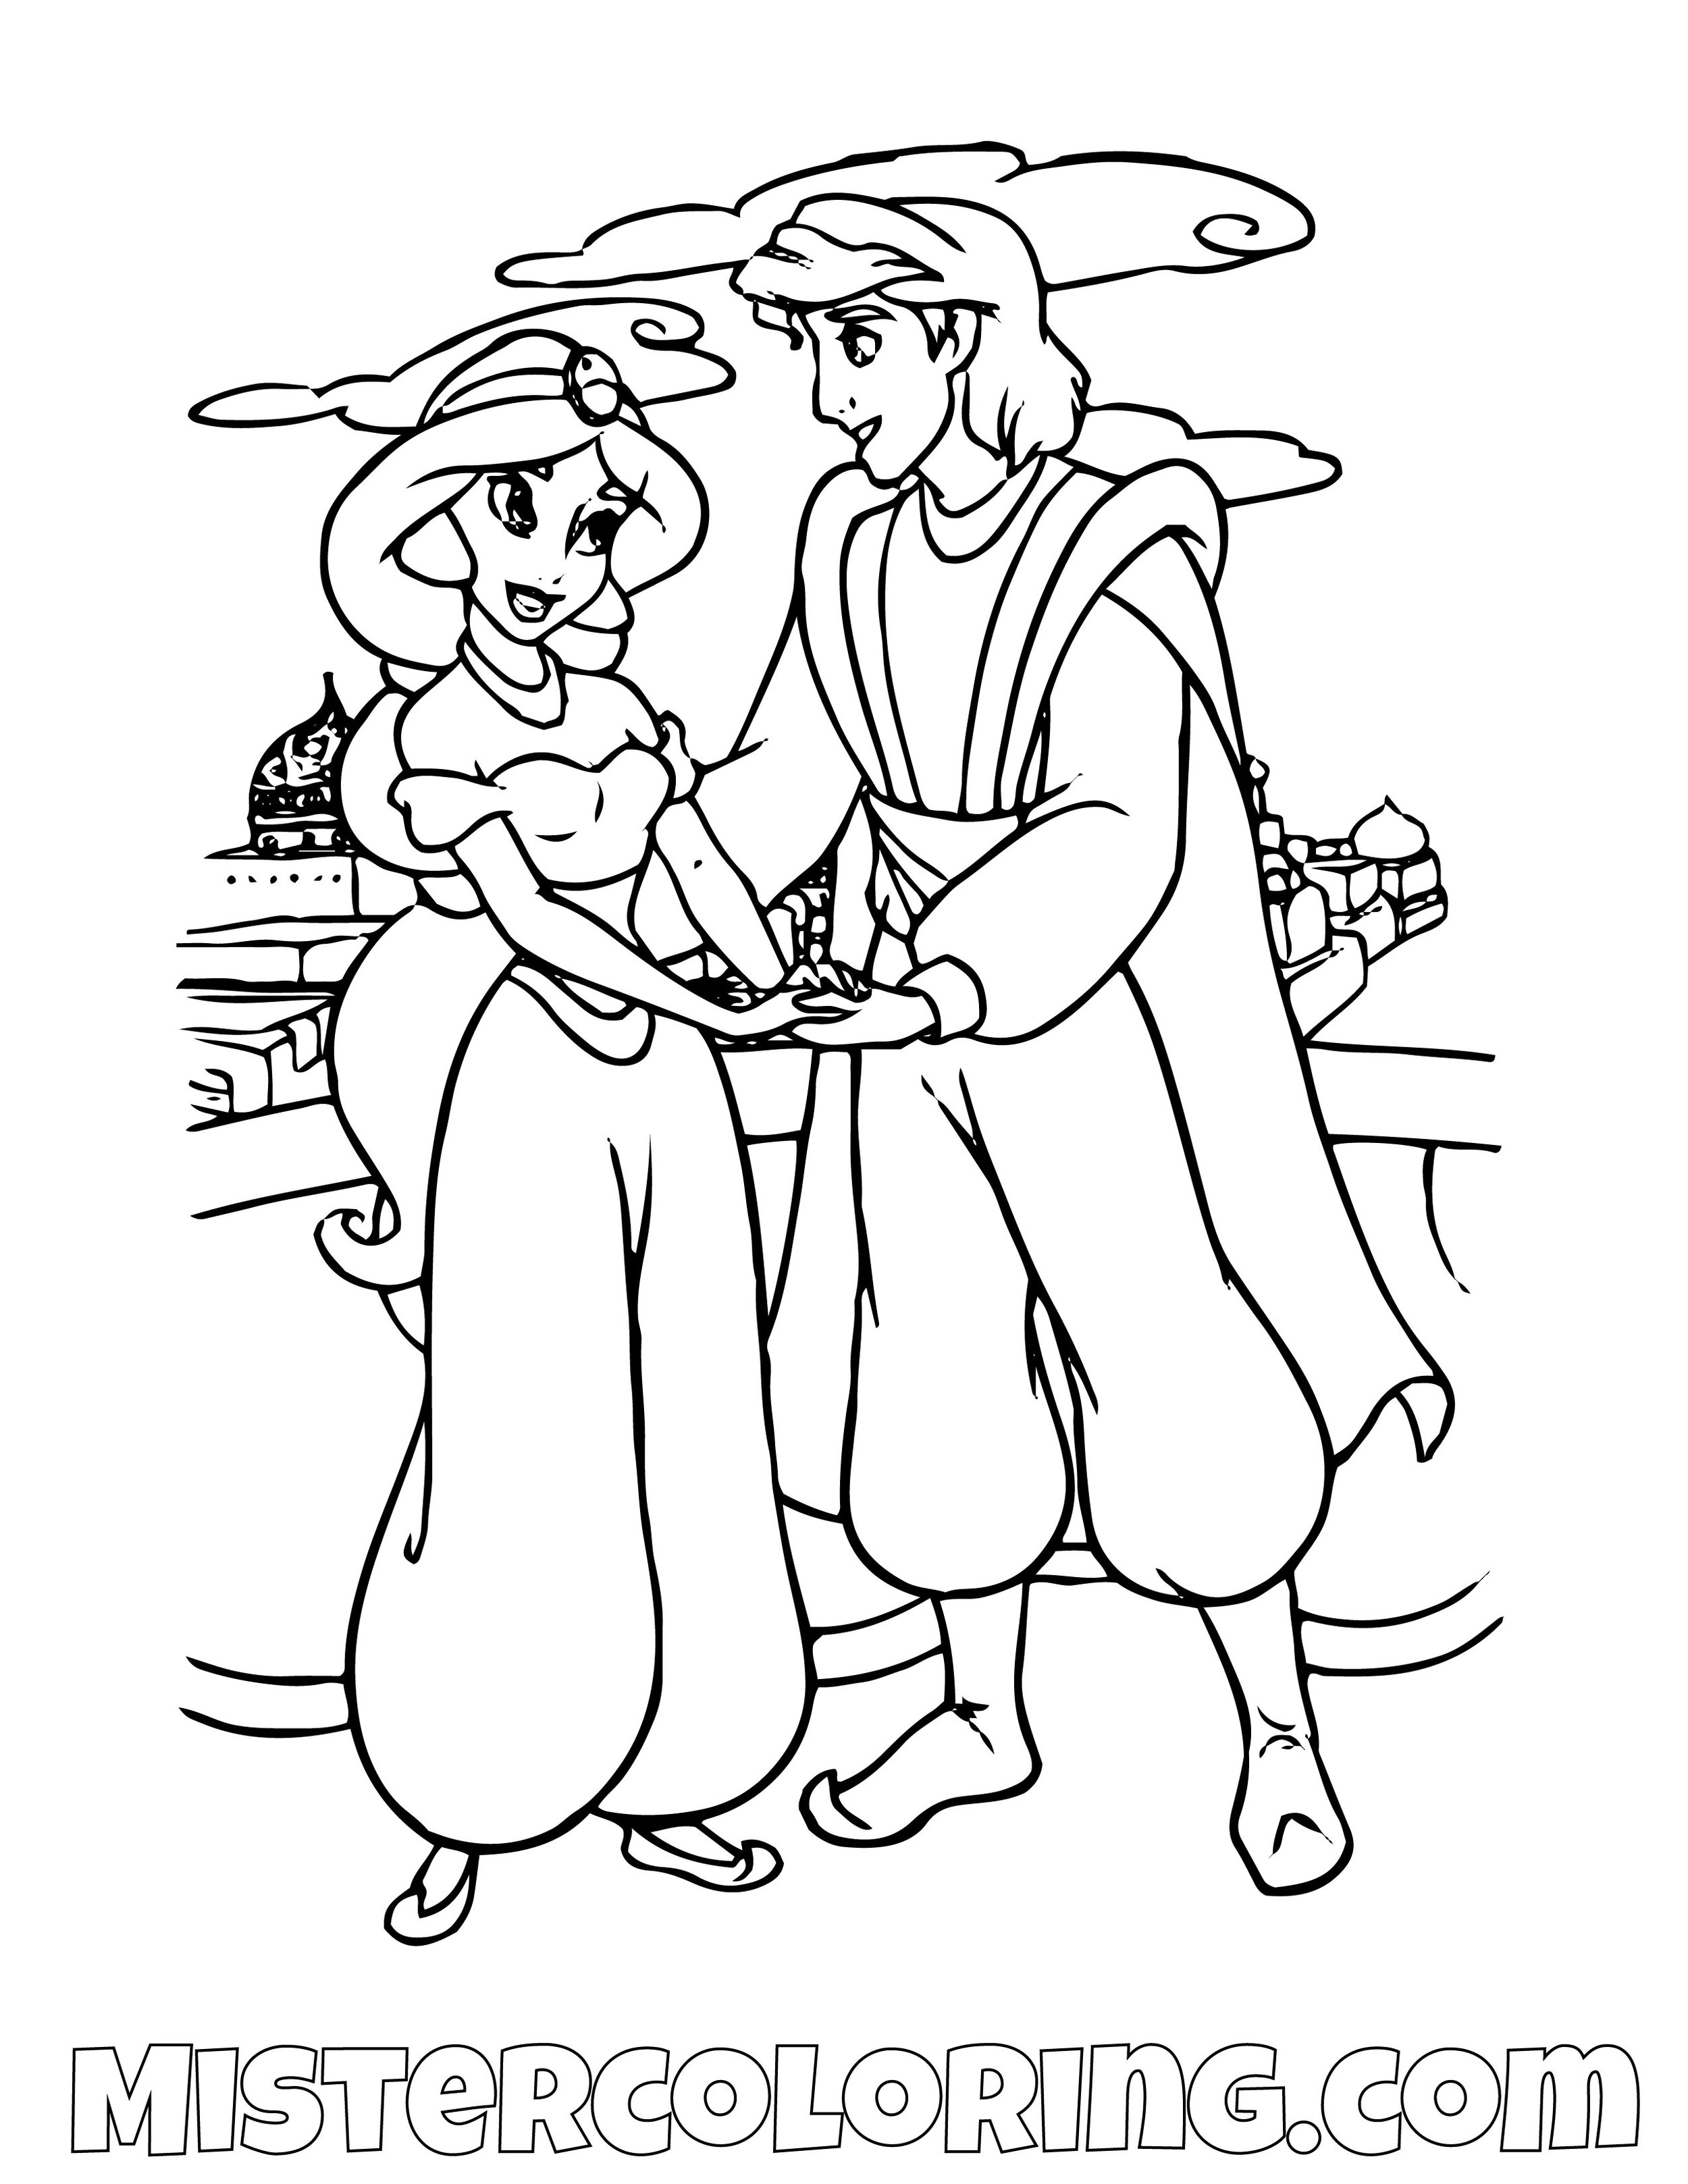 Aladdin And Princess Jasmine Romantic Walk Aladdin Coloring Page